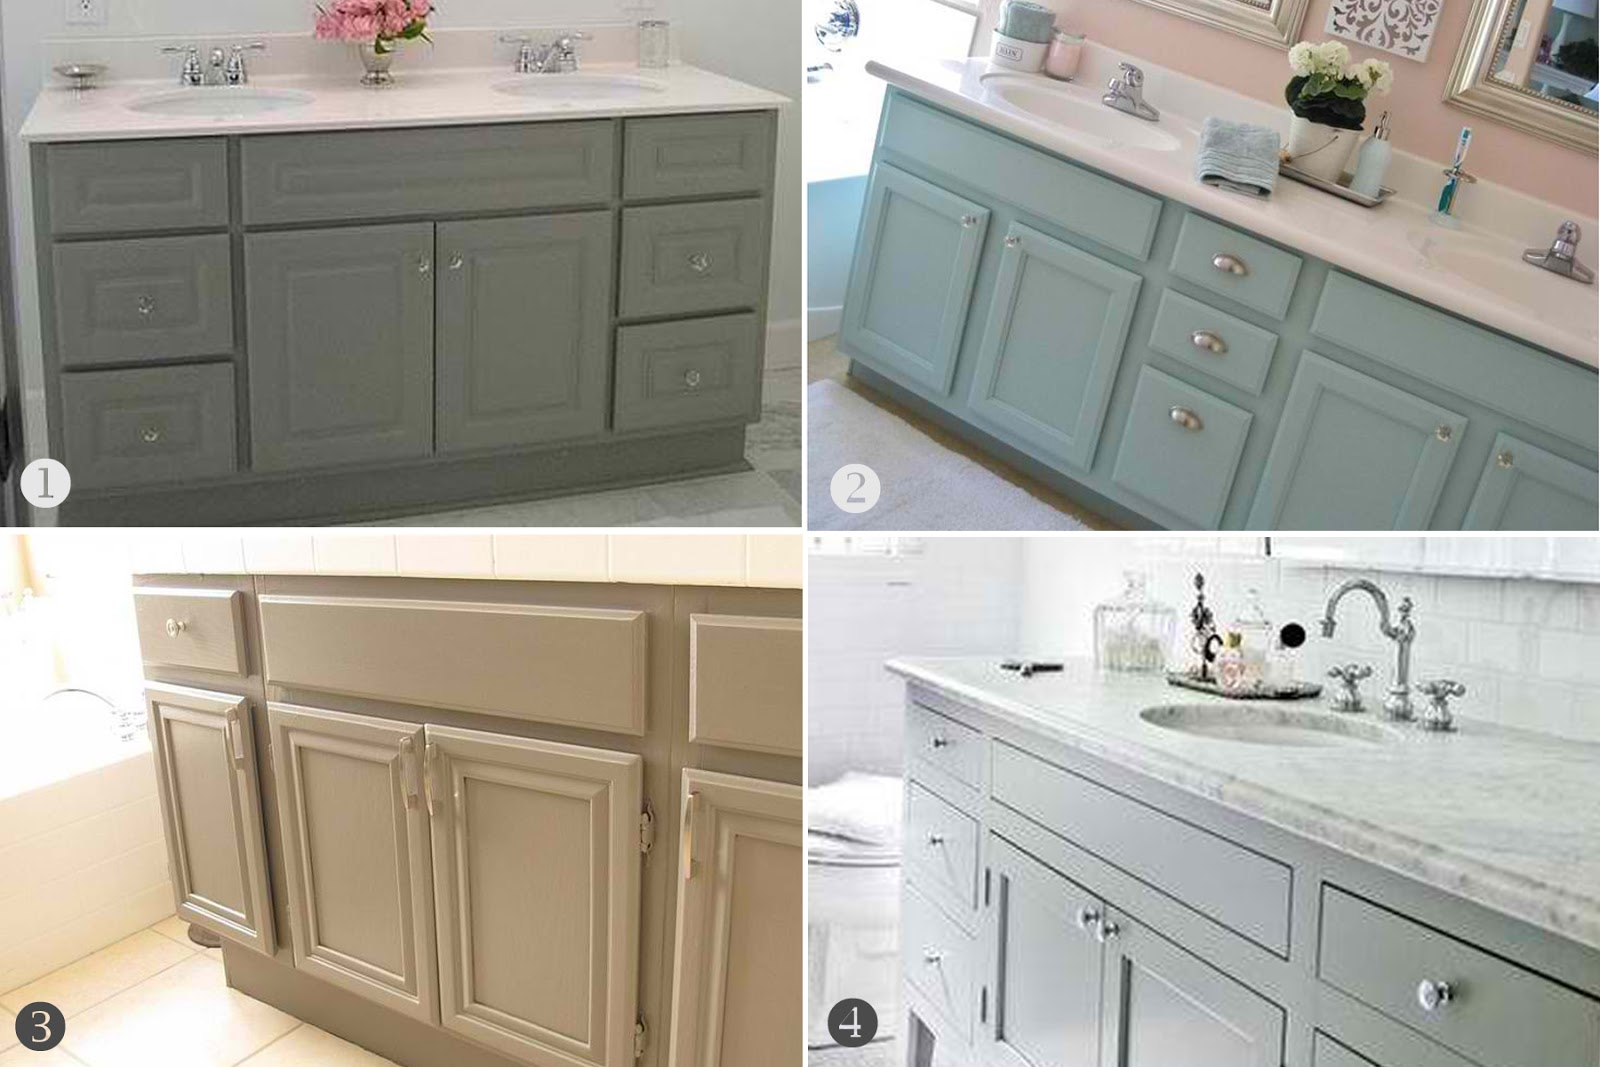 Inspired honey bee home bathroom cabinets upgrade for Bathroom cabinet color ideas